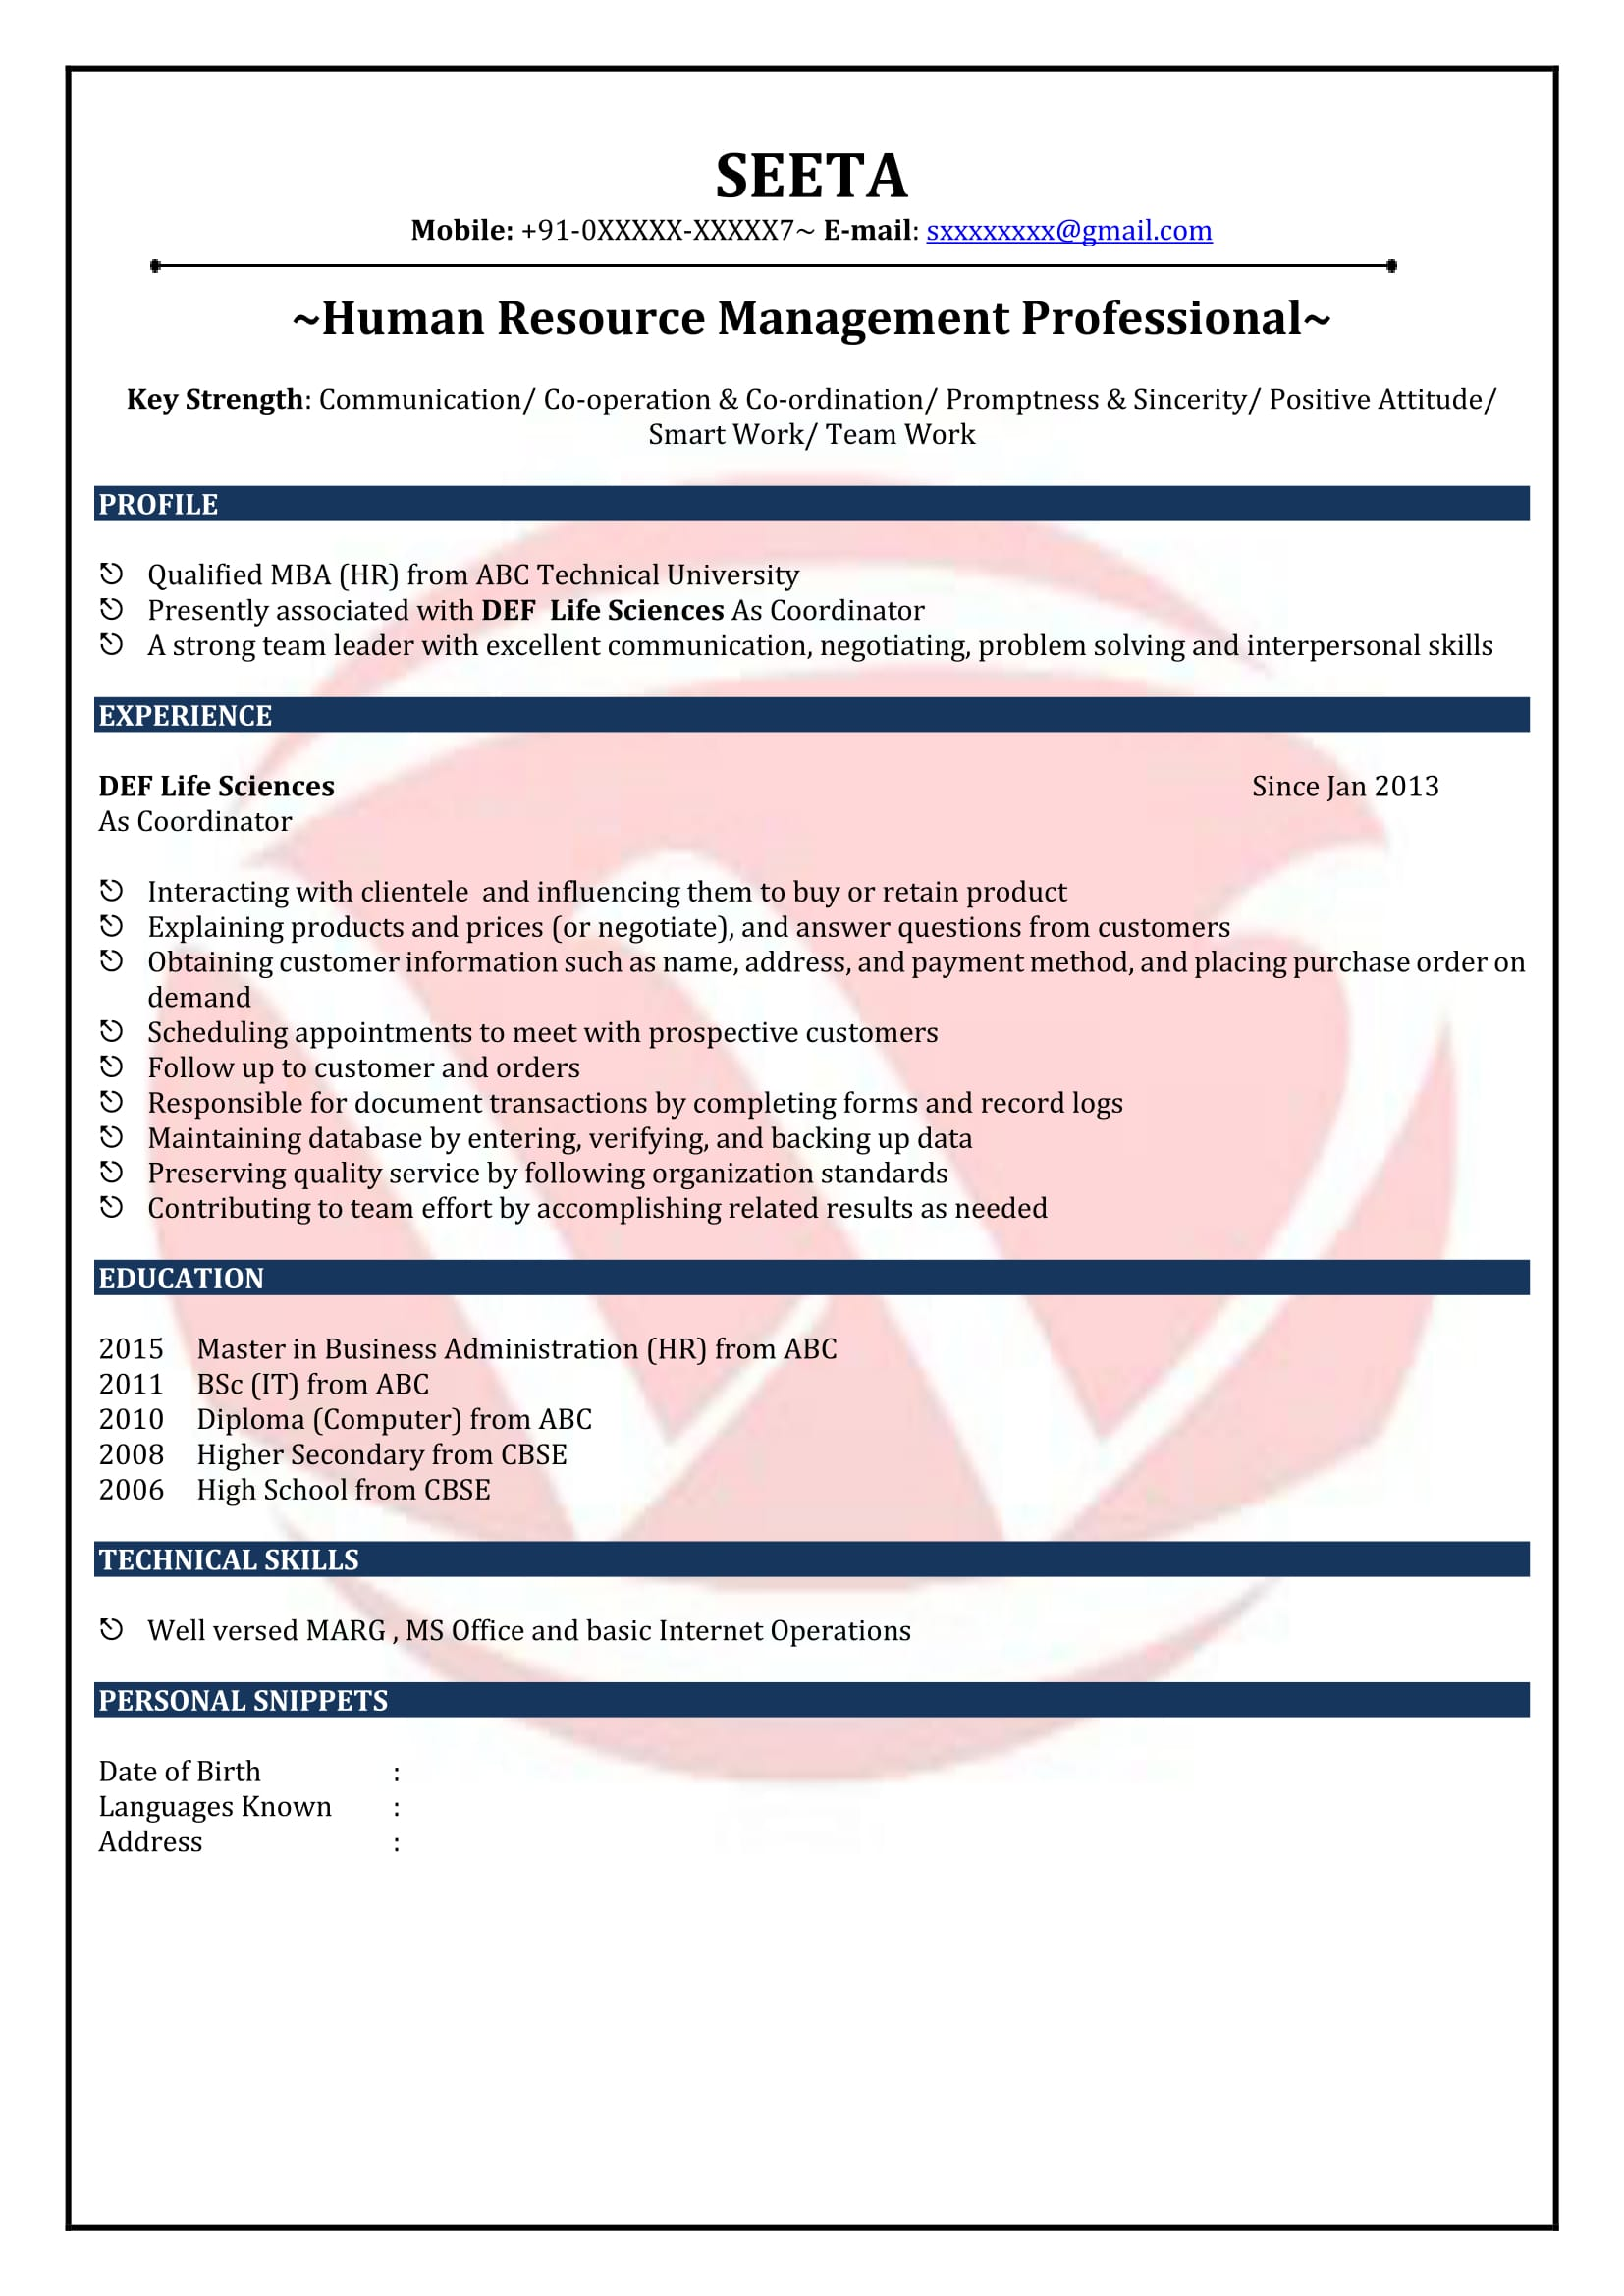 Sample Resume Format For Freshers Hr Fresher Sample Resumes Download Resume Format Templates